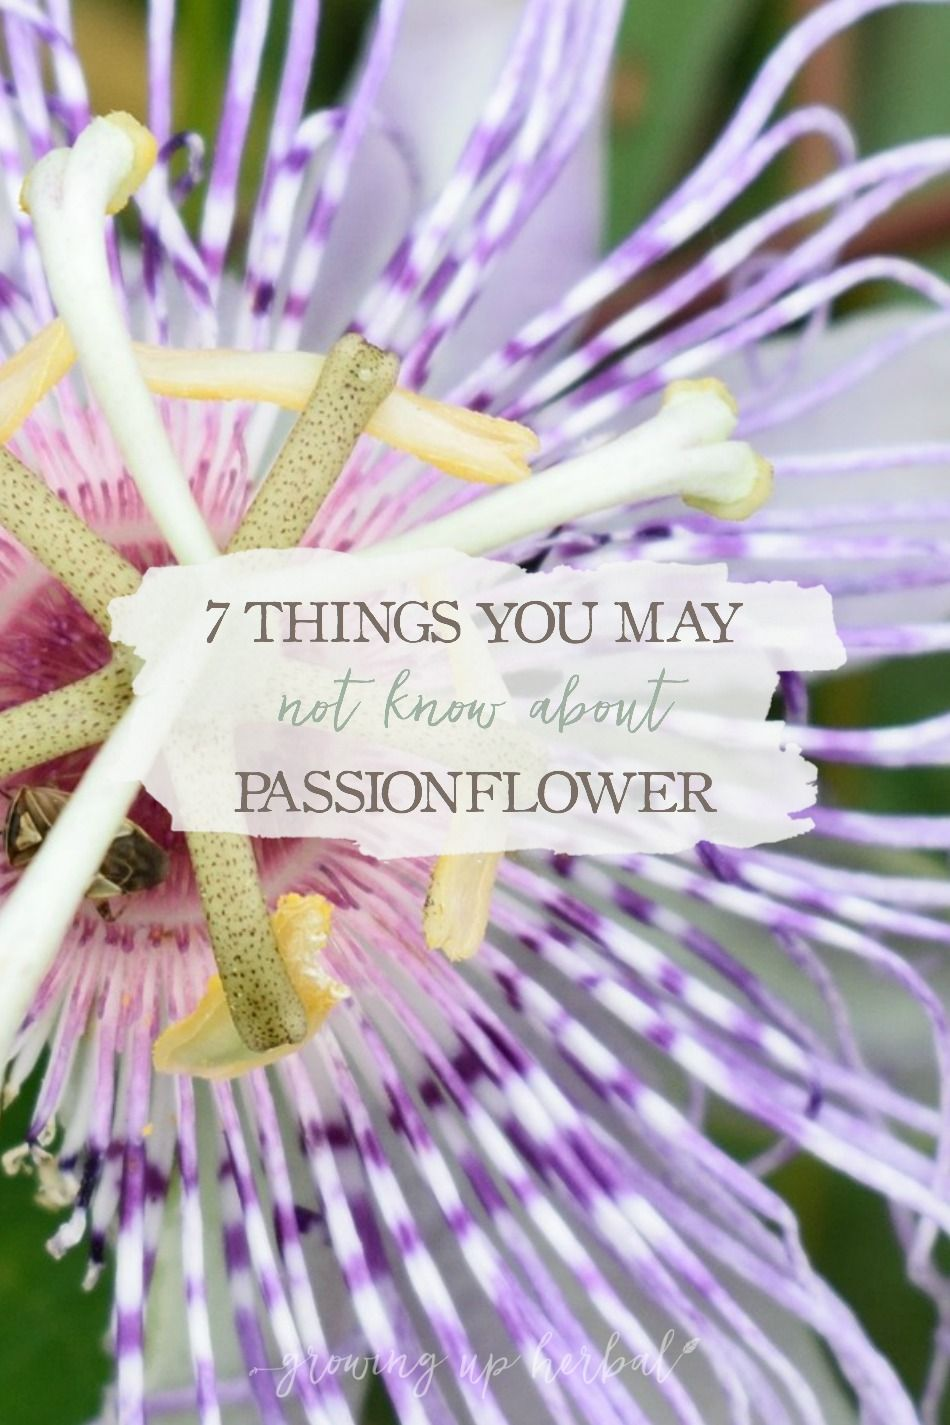 7 Things You May Not Know About Passionflower Growing Up Herbal Passion Flower Benefits Passion Flower Herbalism